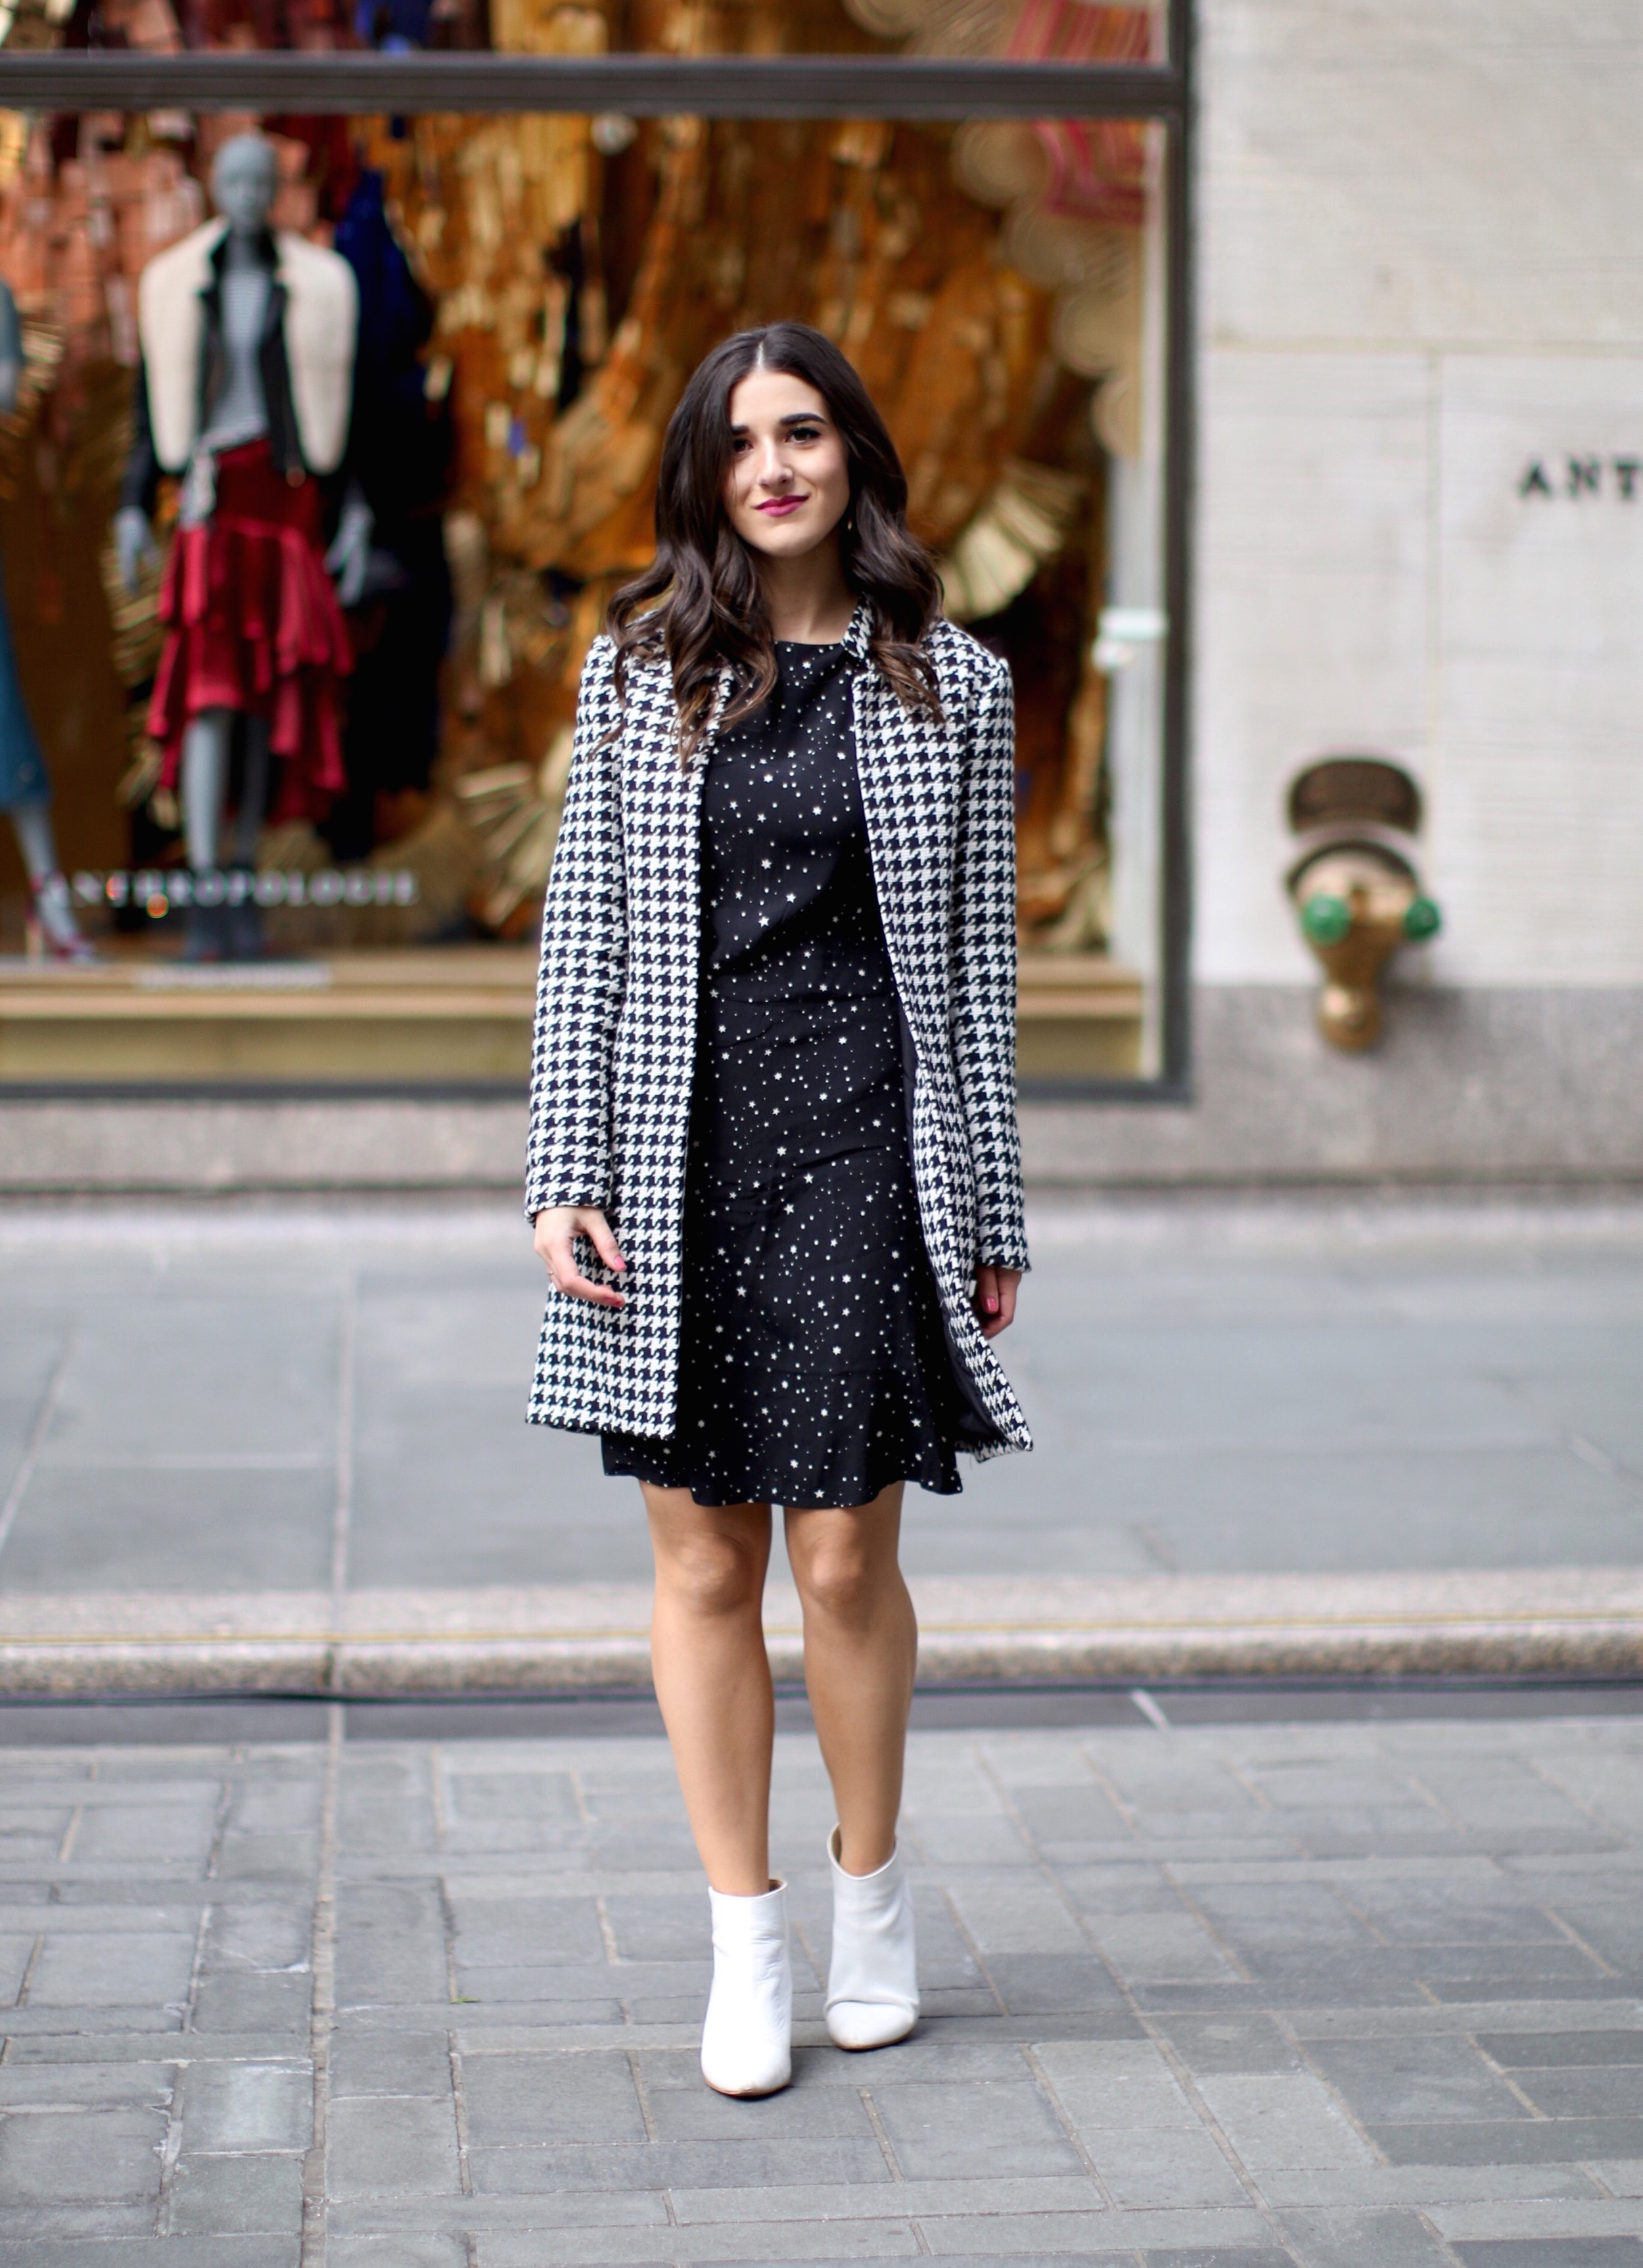 Houndstooth Coat White Booties The Pros And Cons Of Freelancing Esther Santer Fashion Blog NYC Street Style Blogger Outfit OOTD Trendy Holiday Season New York City Photoshoot Pretty Hair Black Star Dress Cute Shoes Women Shop Wear H&M Zara Girl Winter.jpg